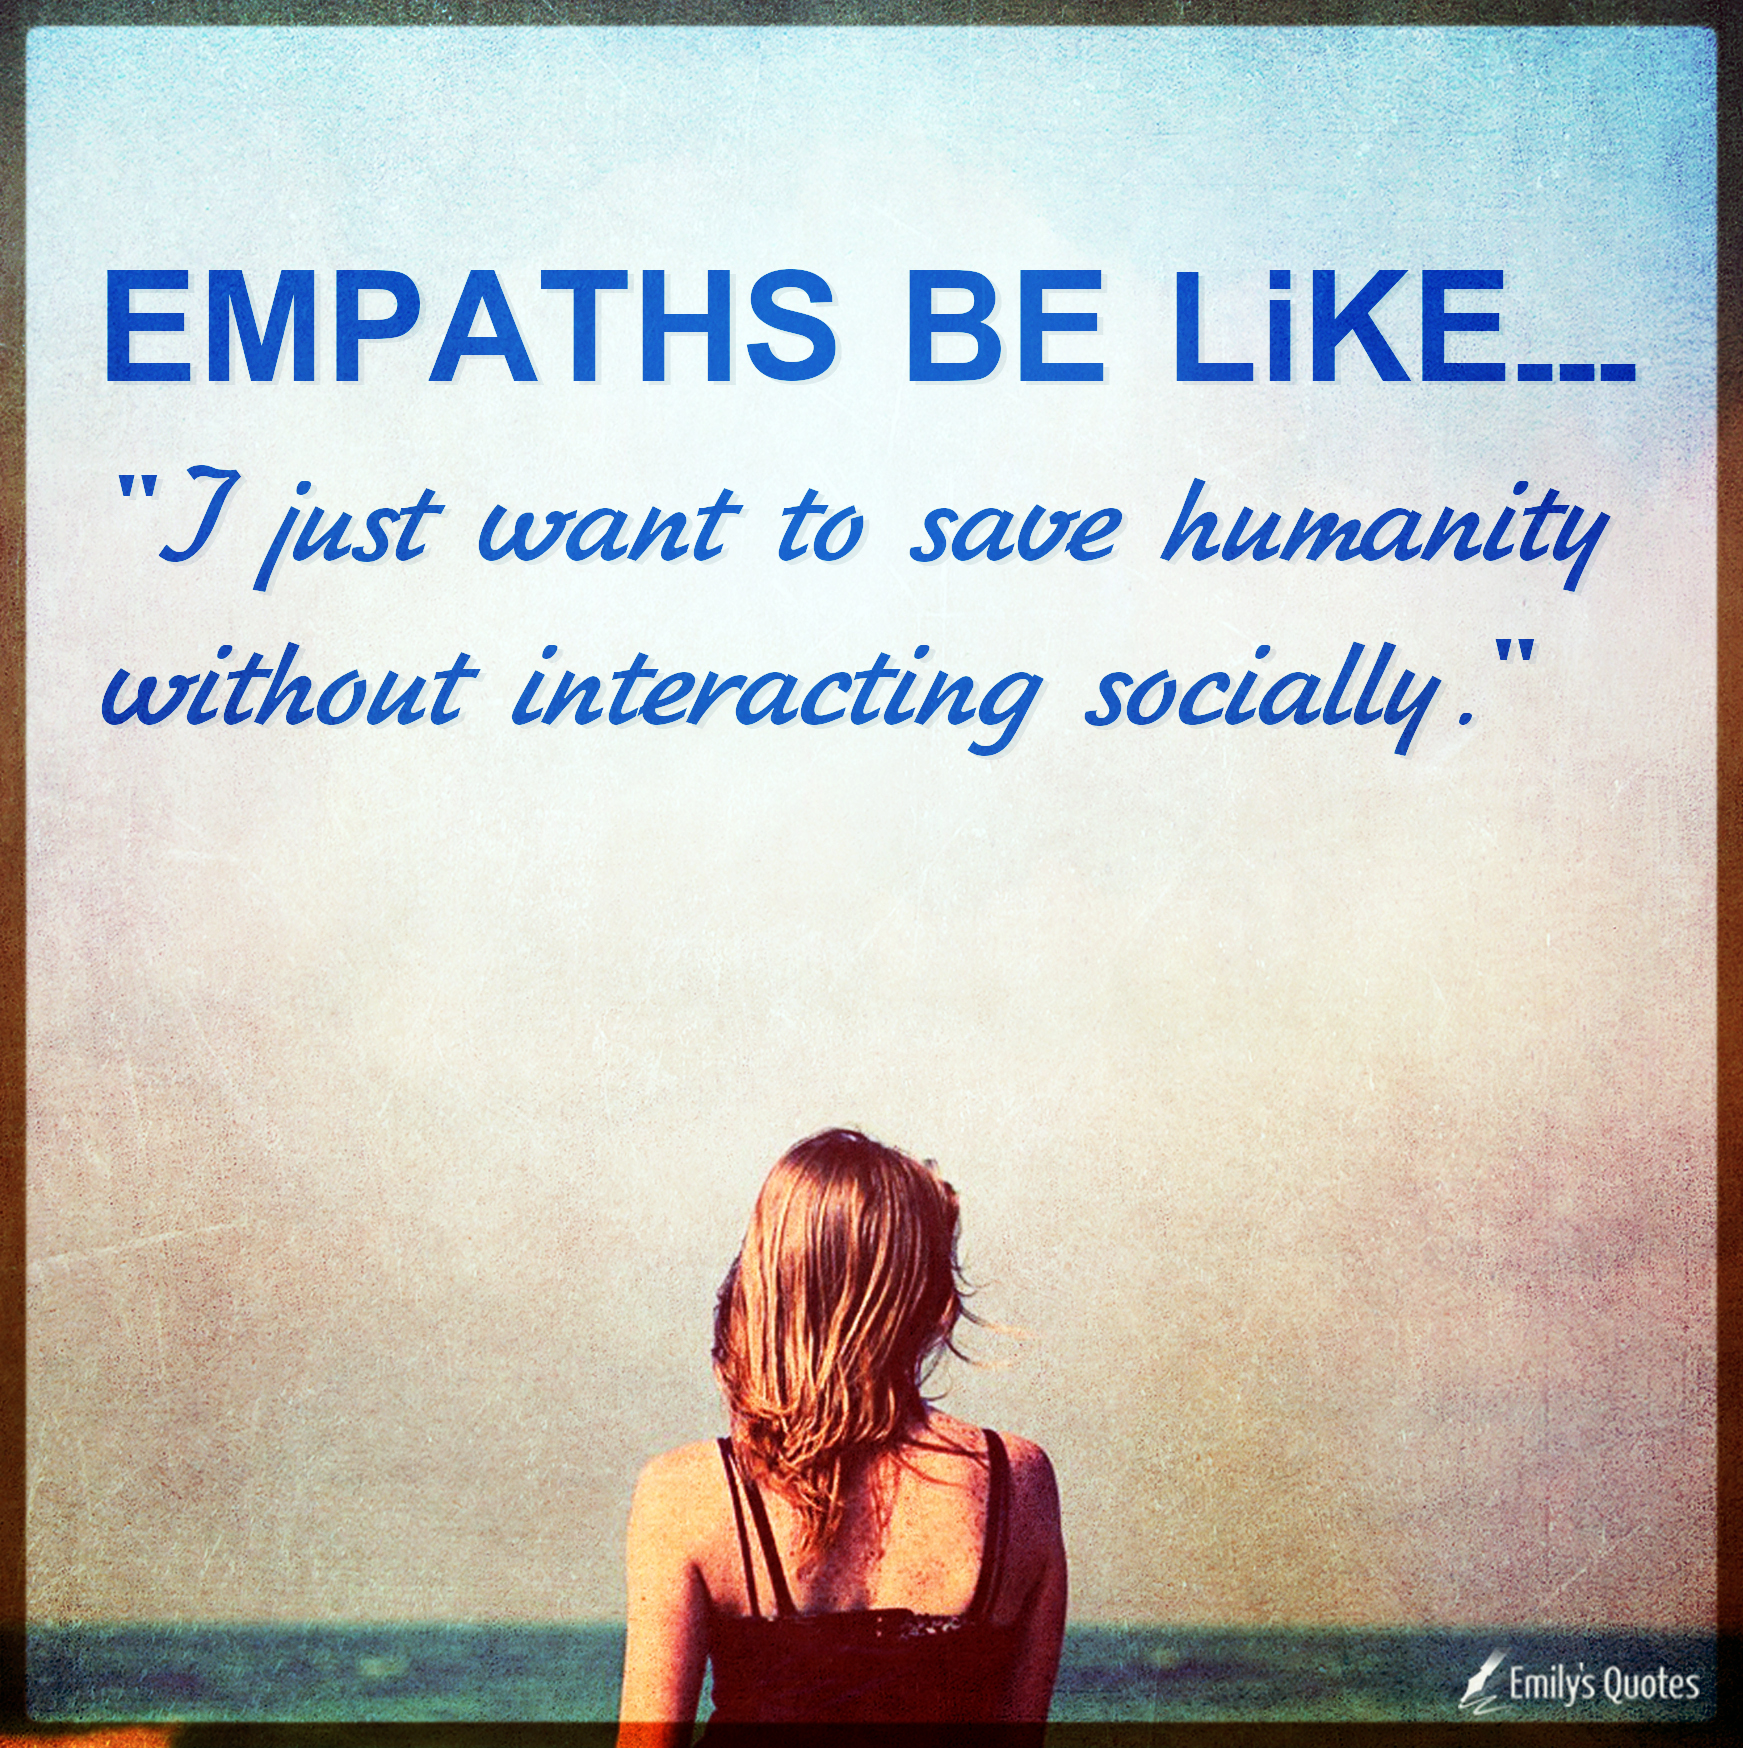 EMPATHS BE LIKE I just want to save humanity | Popular